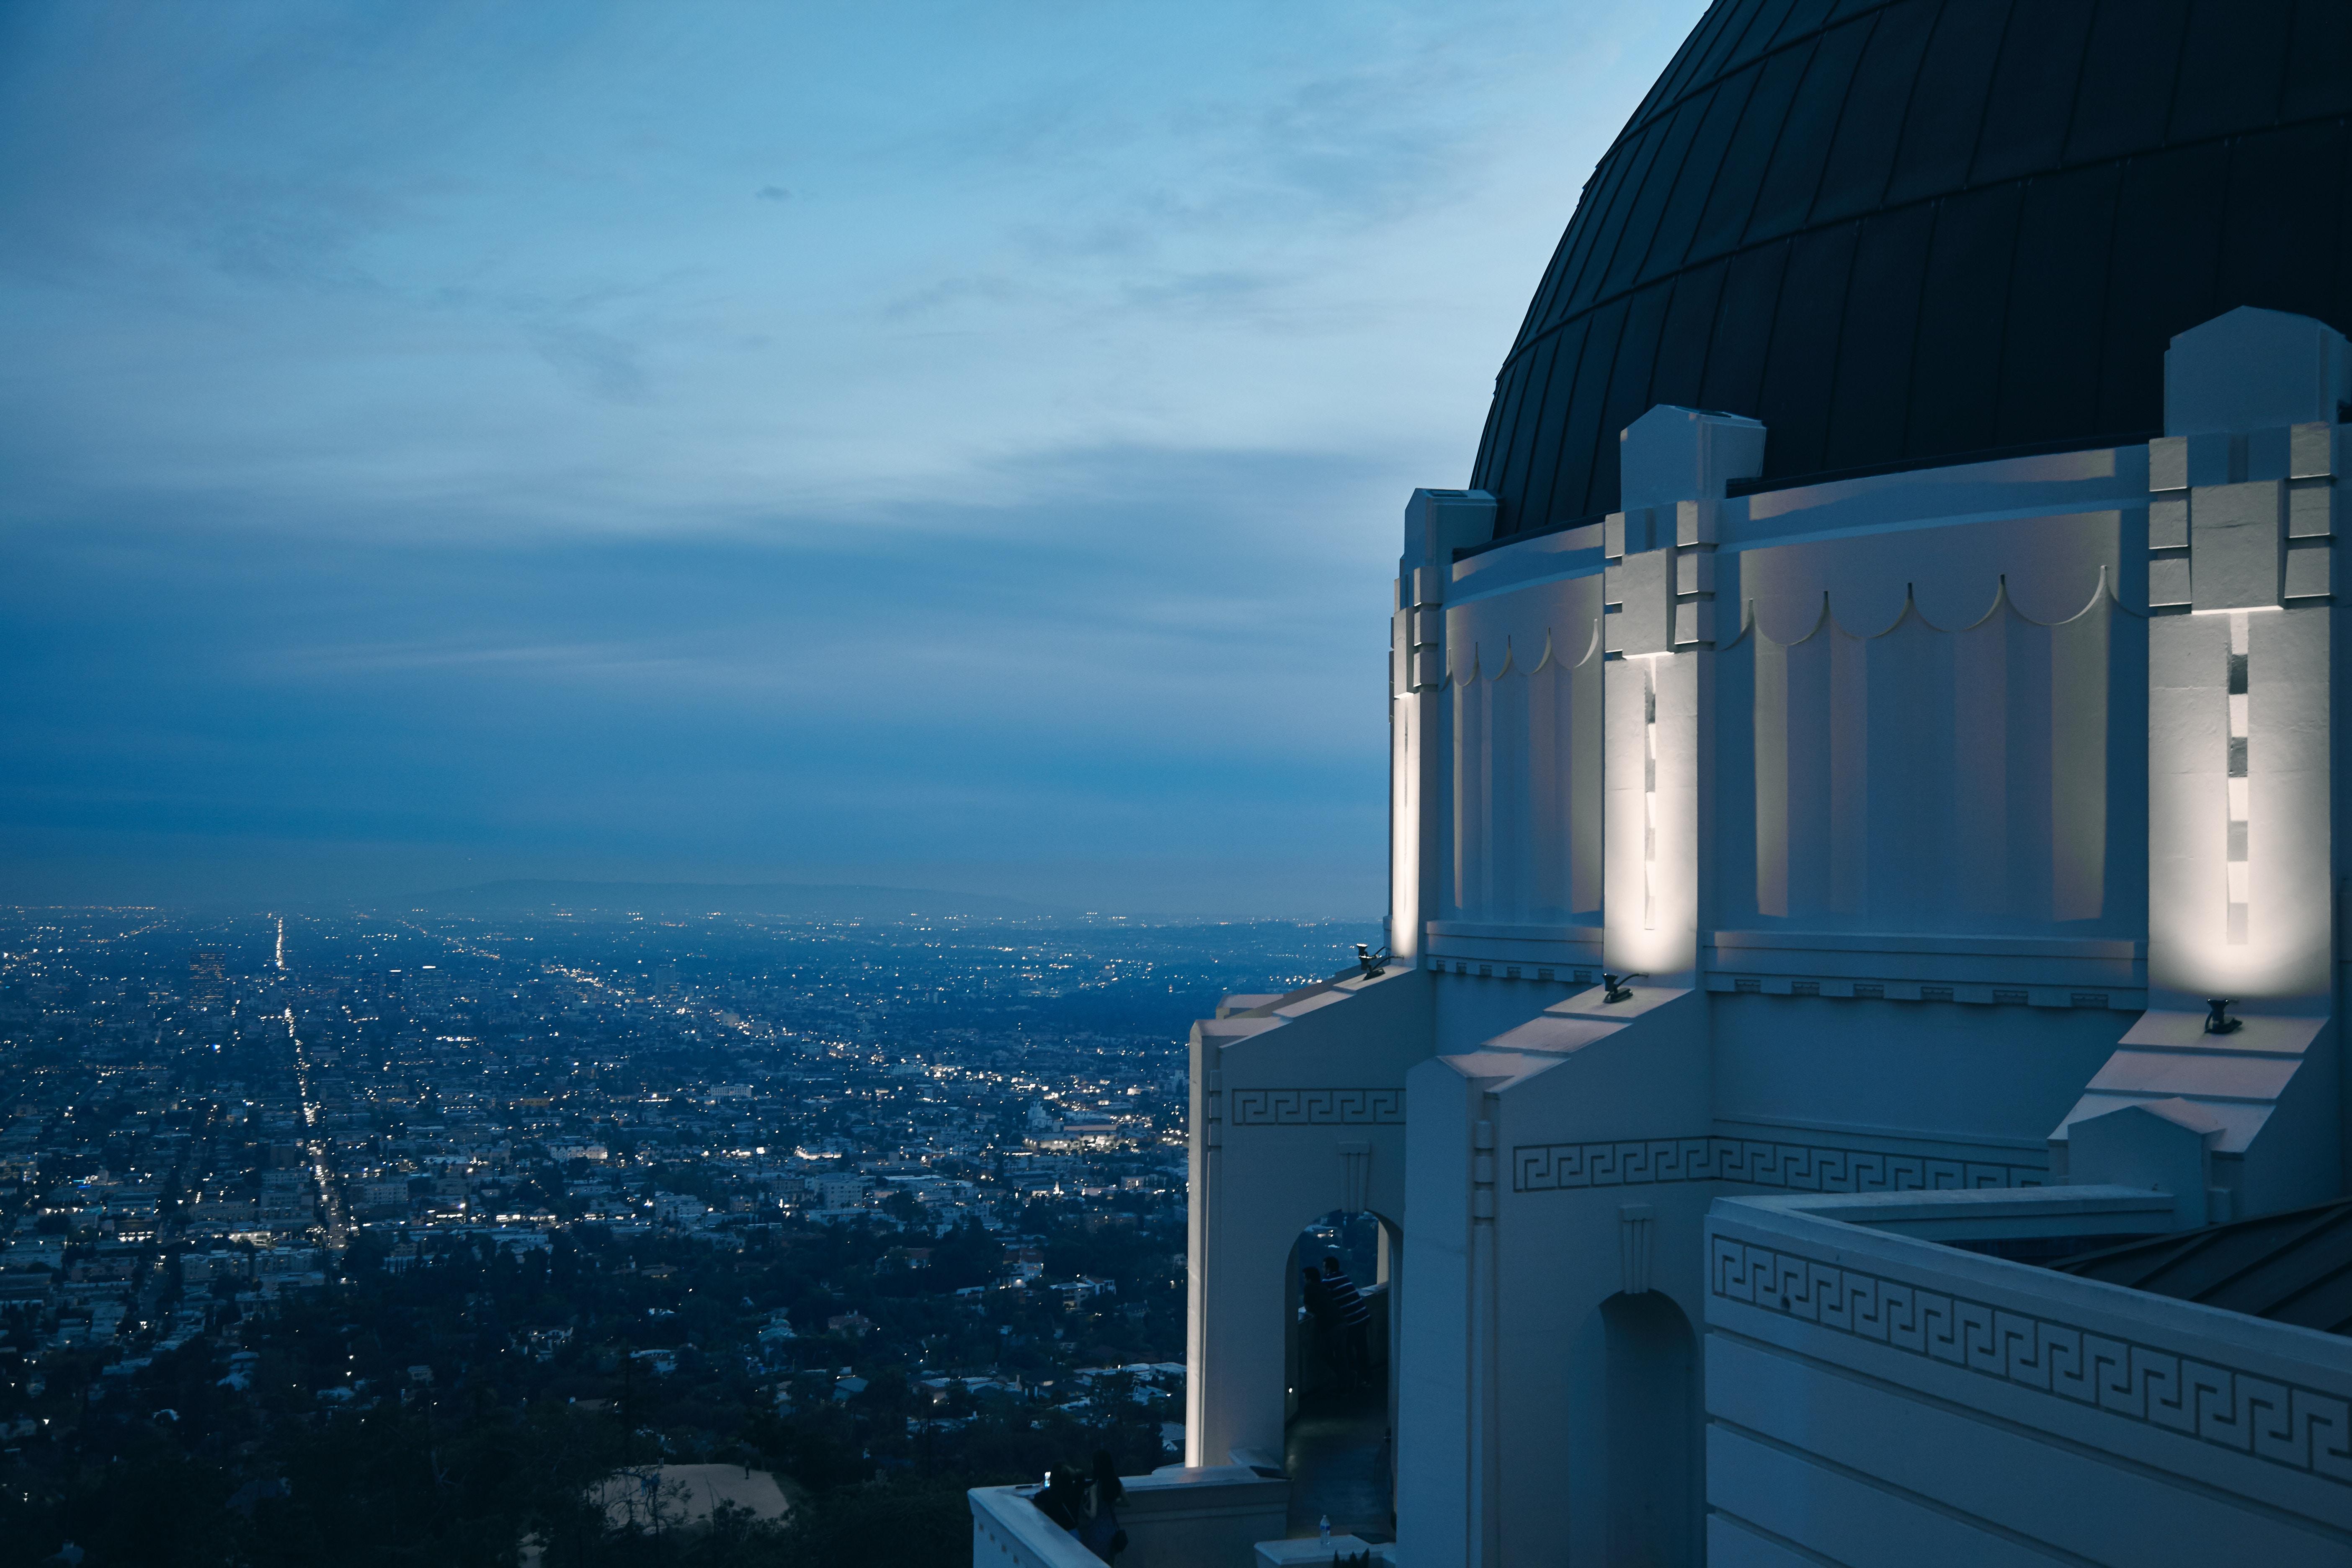 Griffith Observatory at dusk with a cityscape in the background